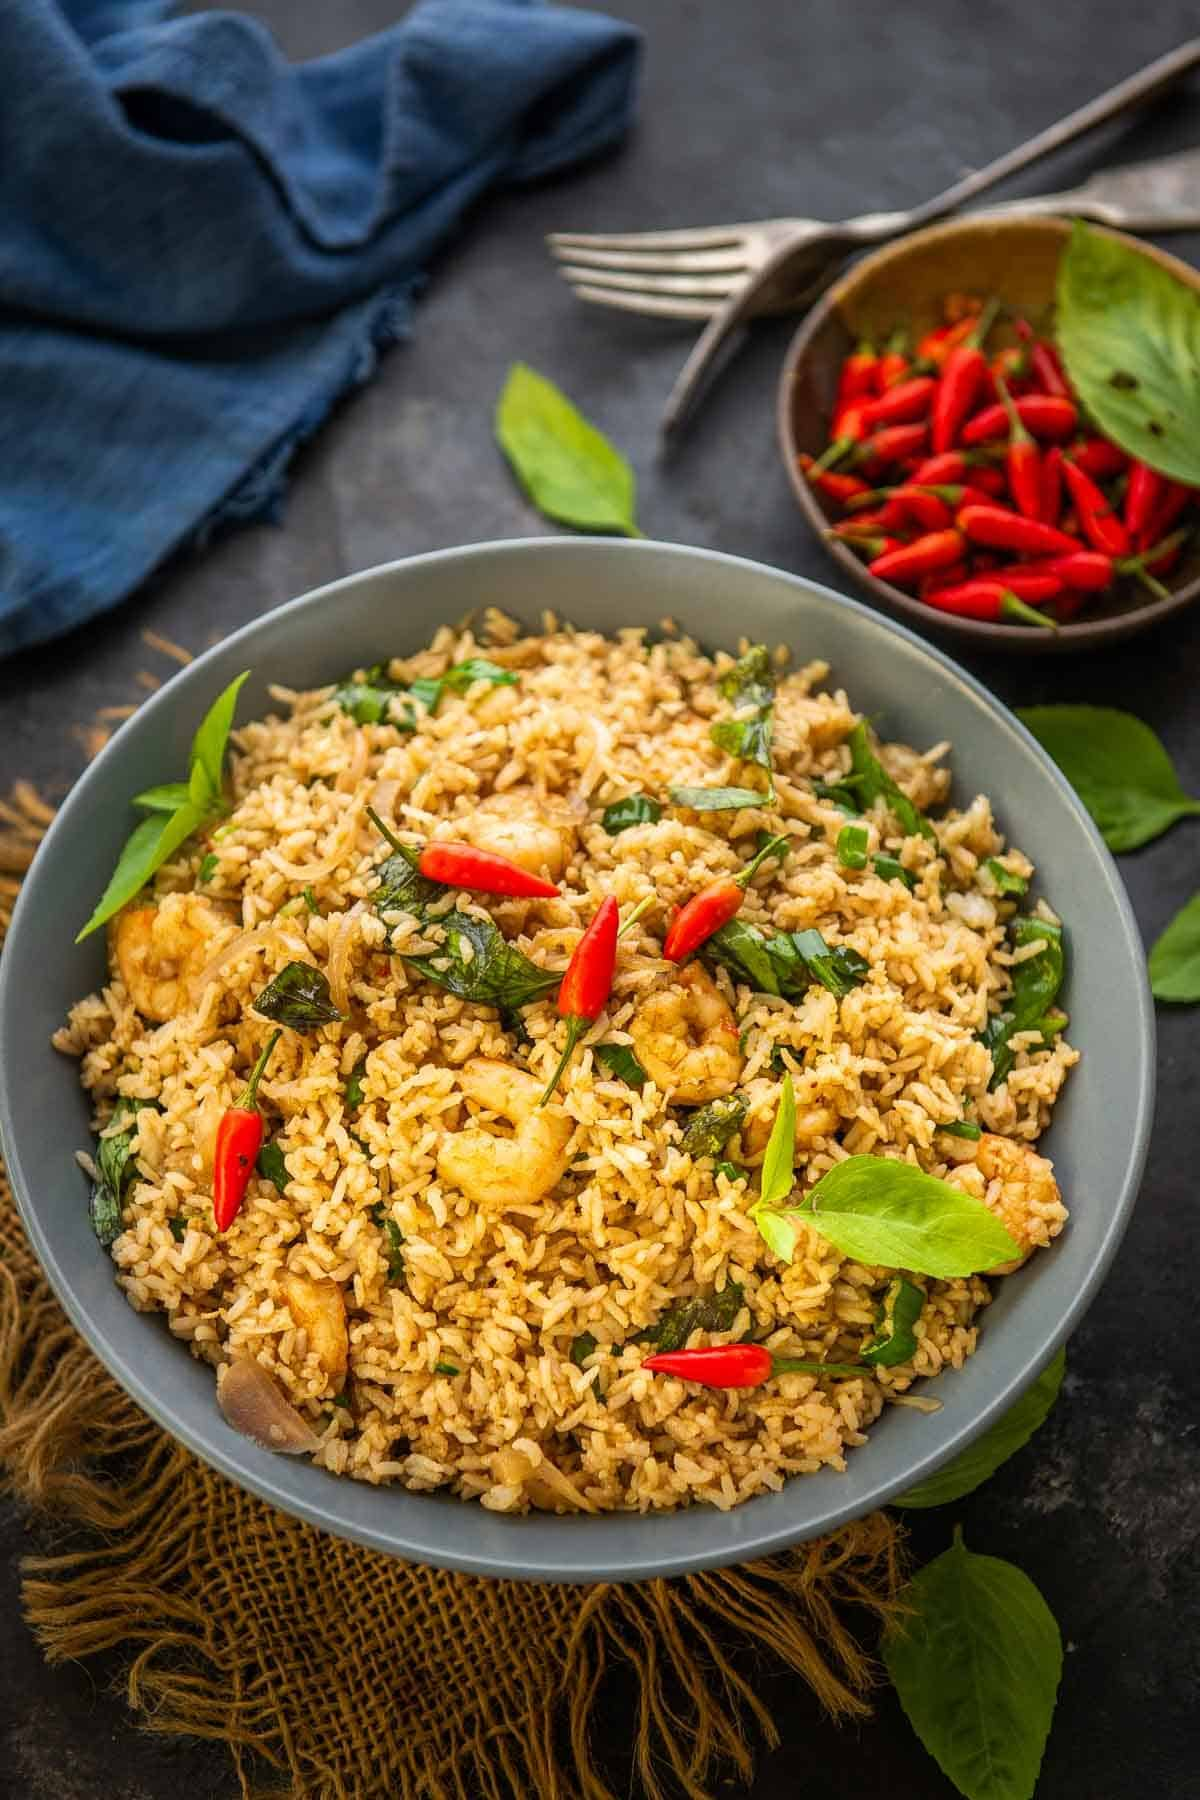 Thai fried rice served in a bowl.